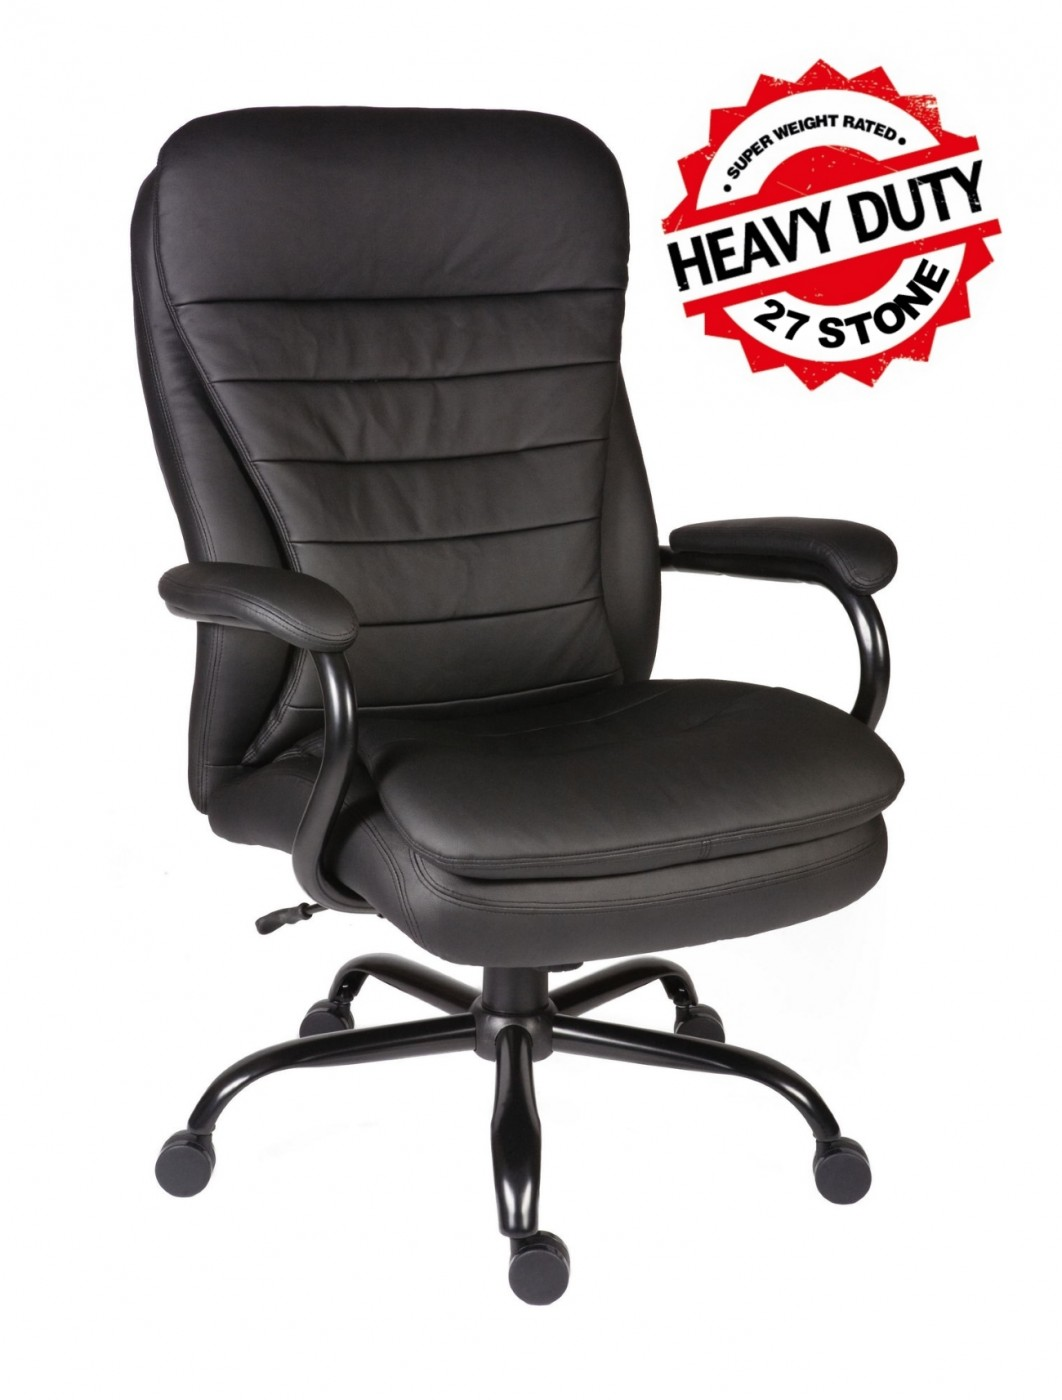 Office Chairs Computer Chairs Goliath B991 121 Office  : EH4fyLDtteknikgoliathheavydutyleatherofficechairb9911 from www.121officefurniture.co.uk size 1062 x 1400 jpeg 130kB